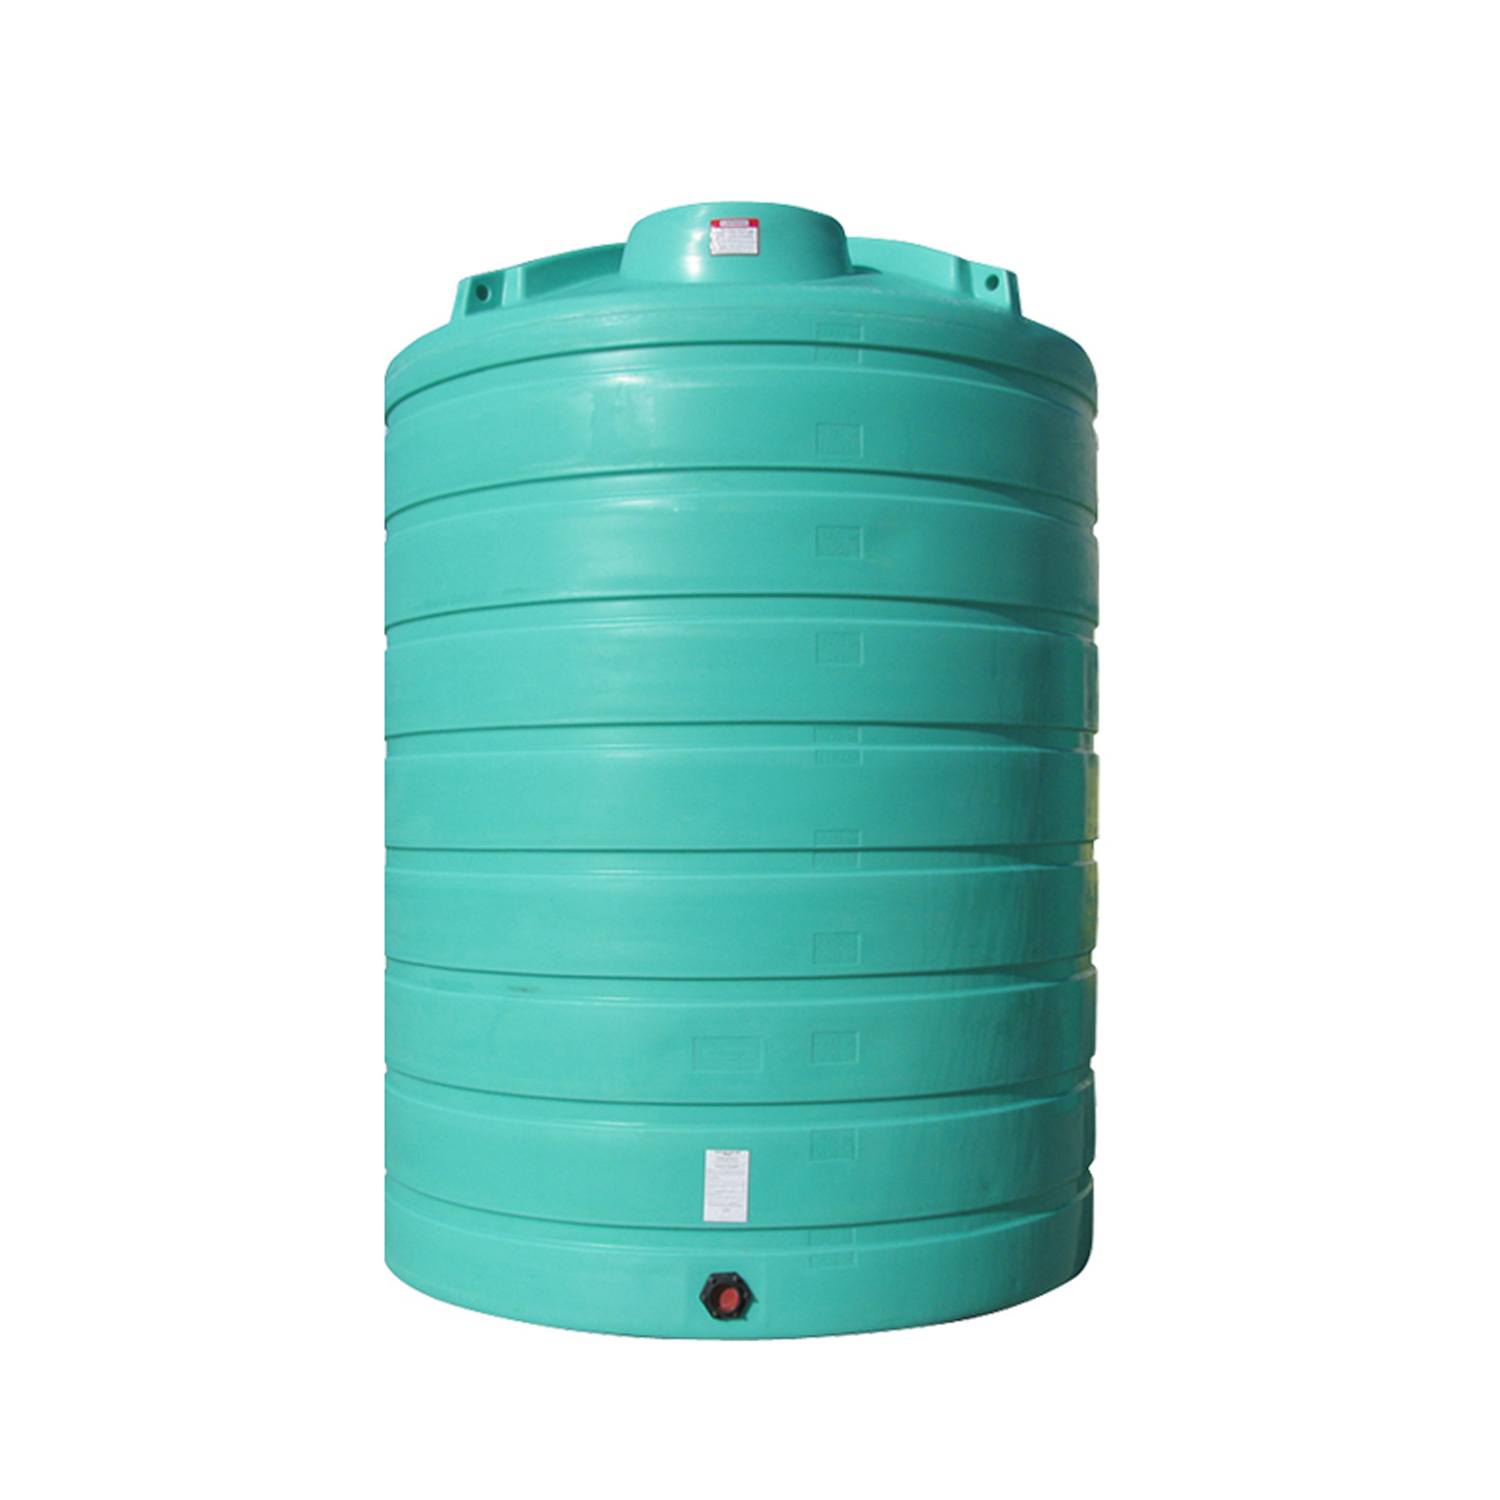 Enduraplas 5,000 Gallon Flat Bottom Storage Tank